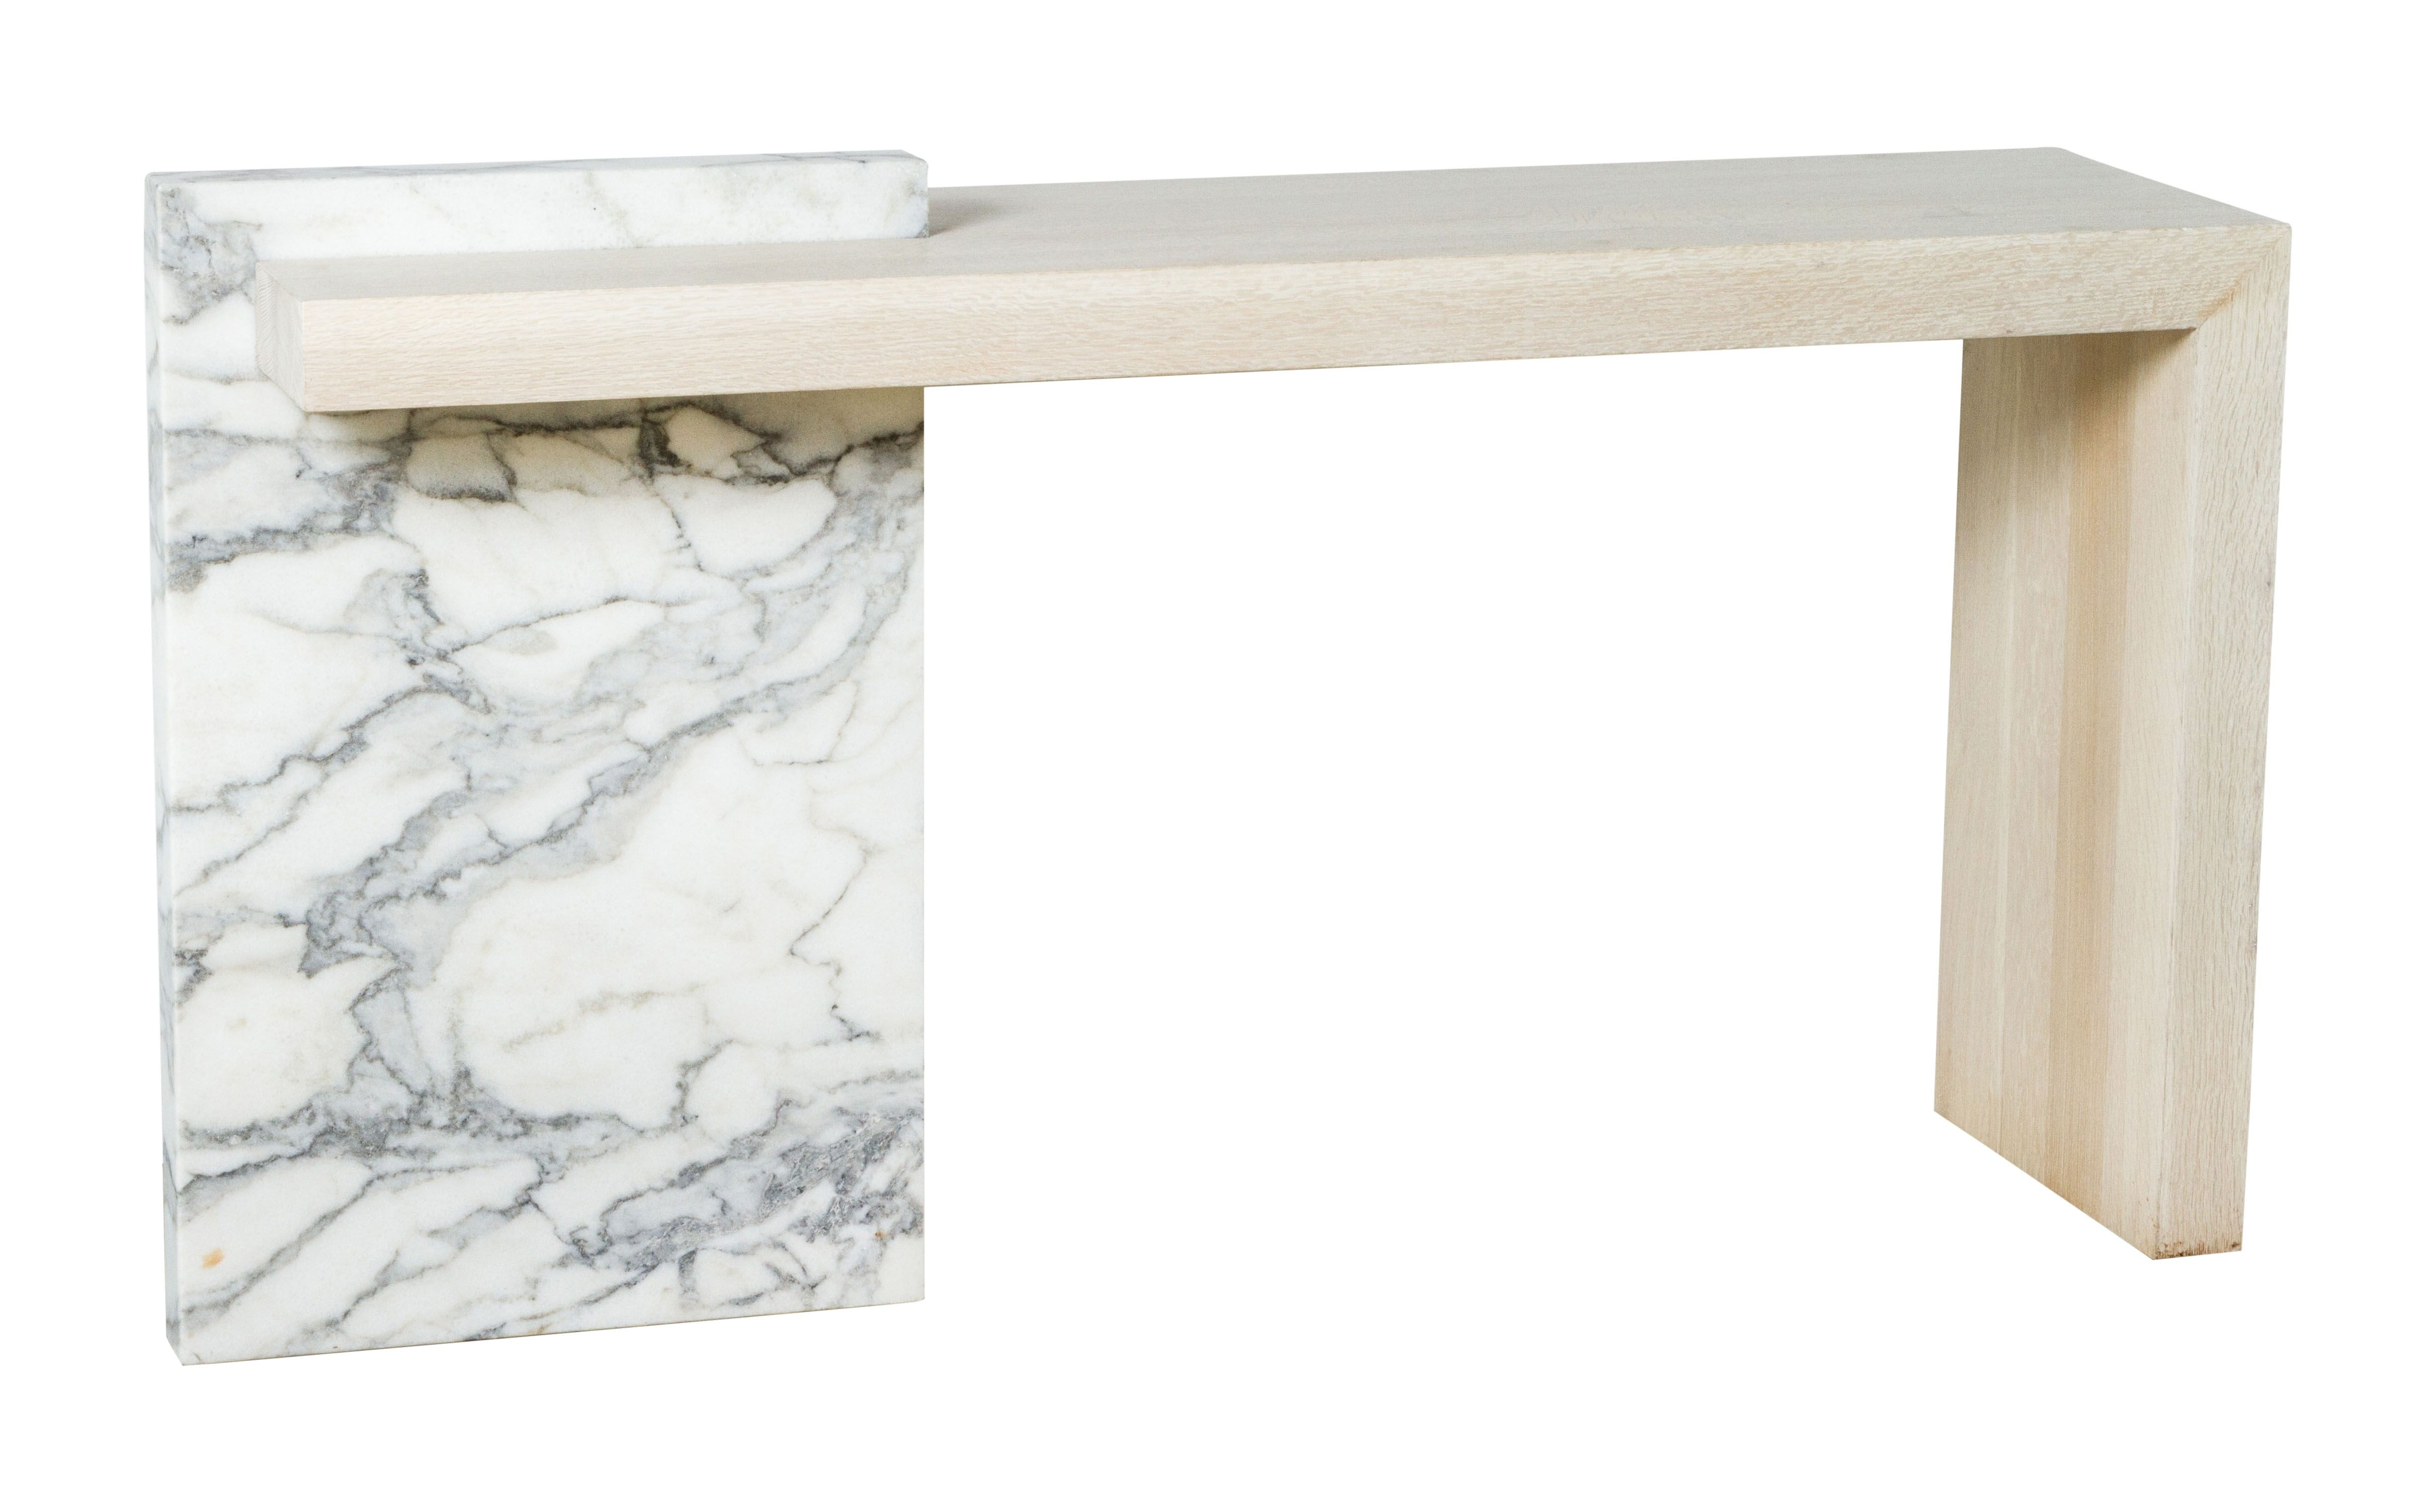 49 Round Nesting Coffee Table By Letshide In 2020 Marble Coffee Table Marble Tables Living Room Coffe Table Design